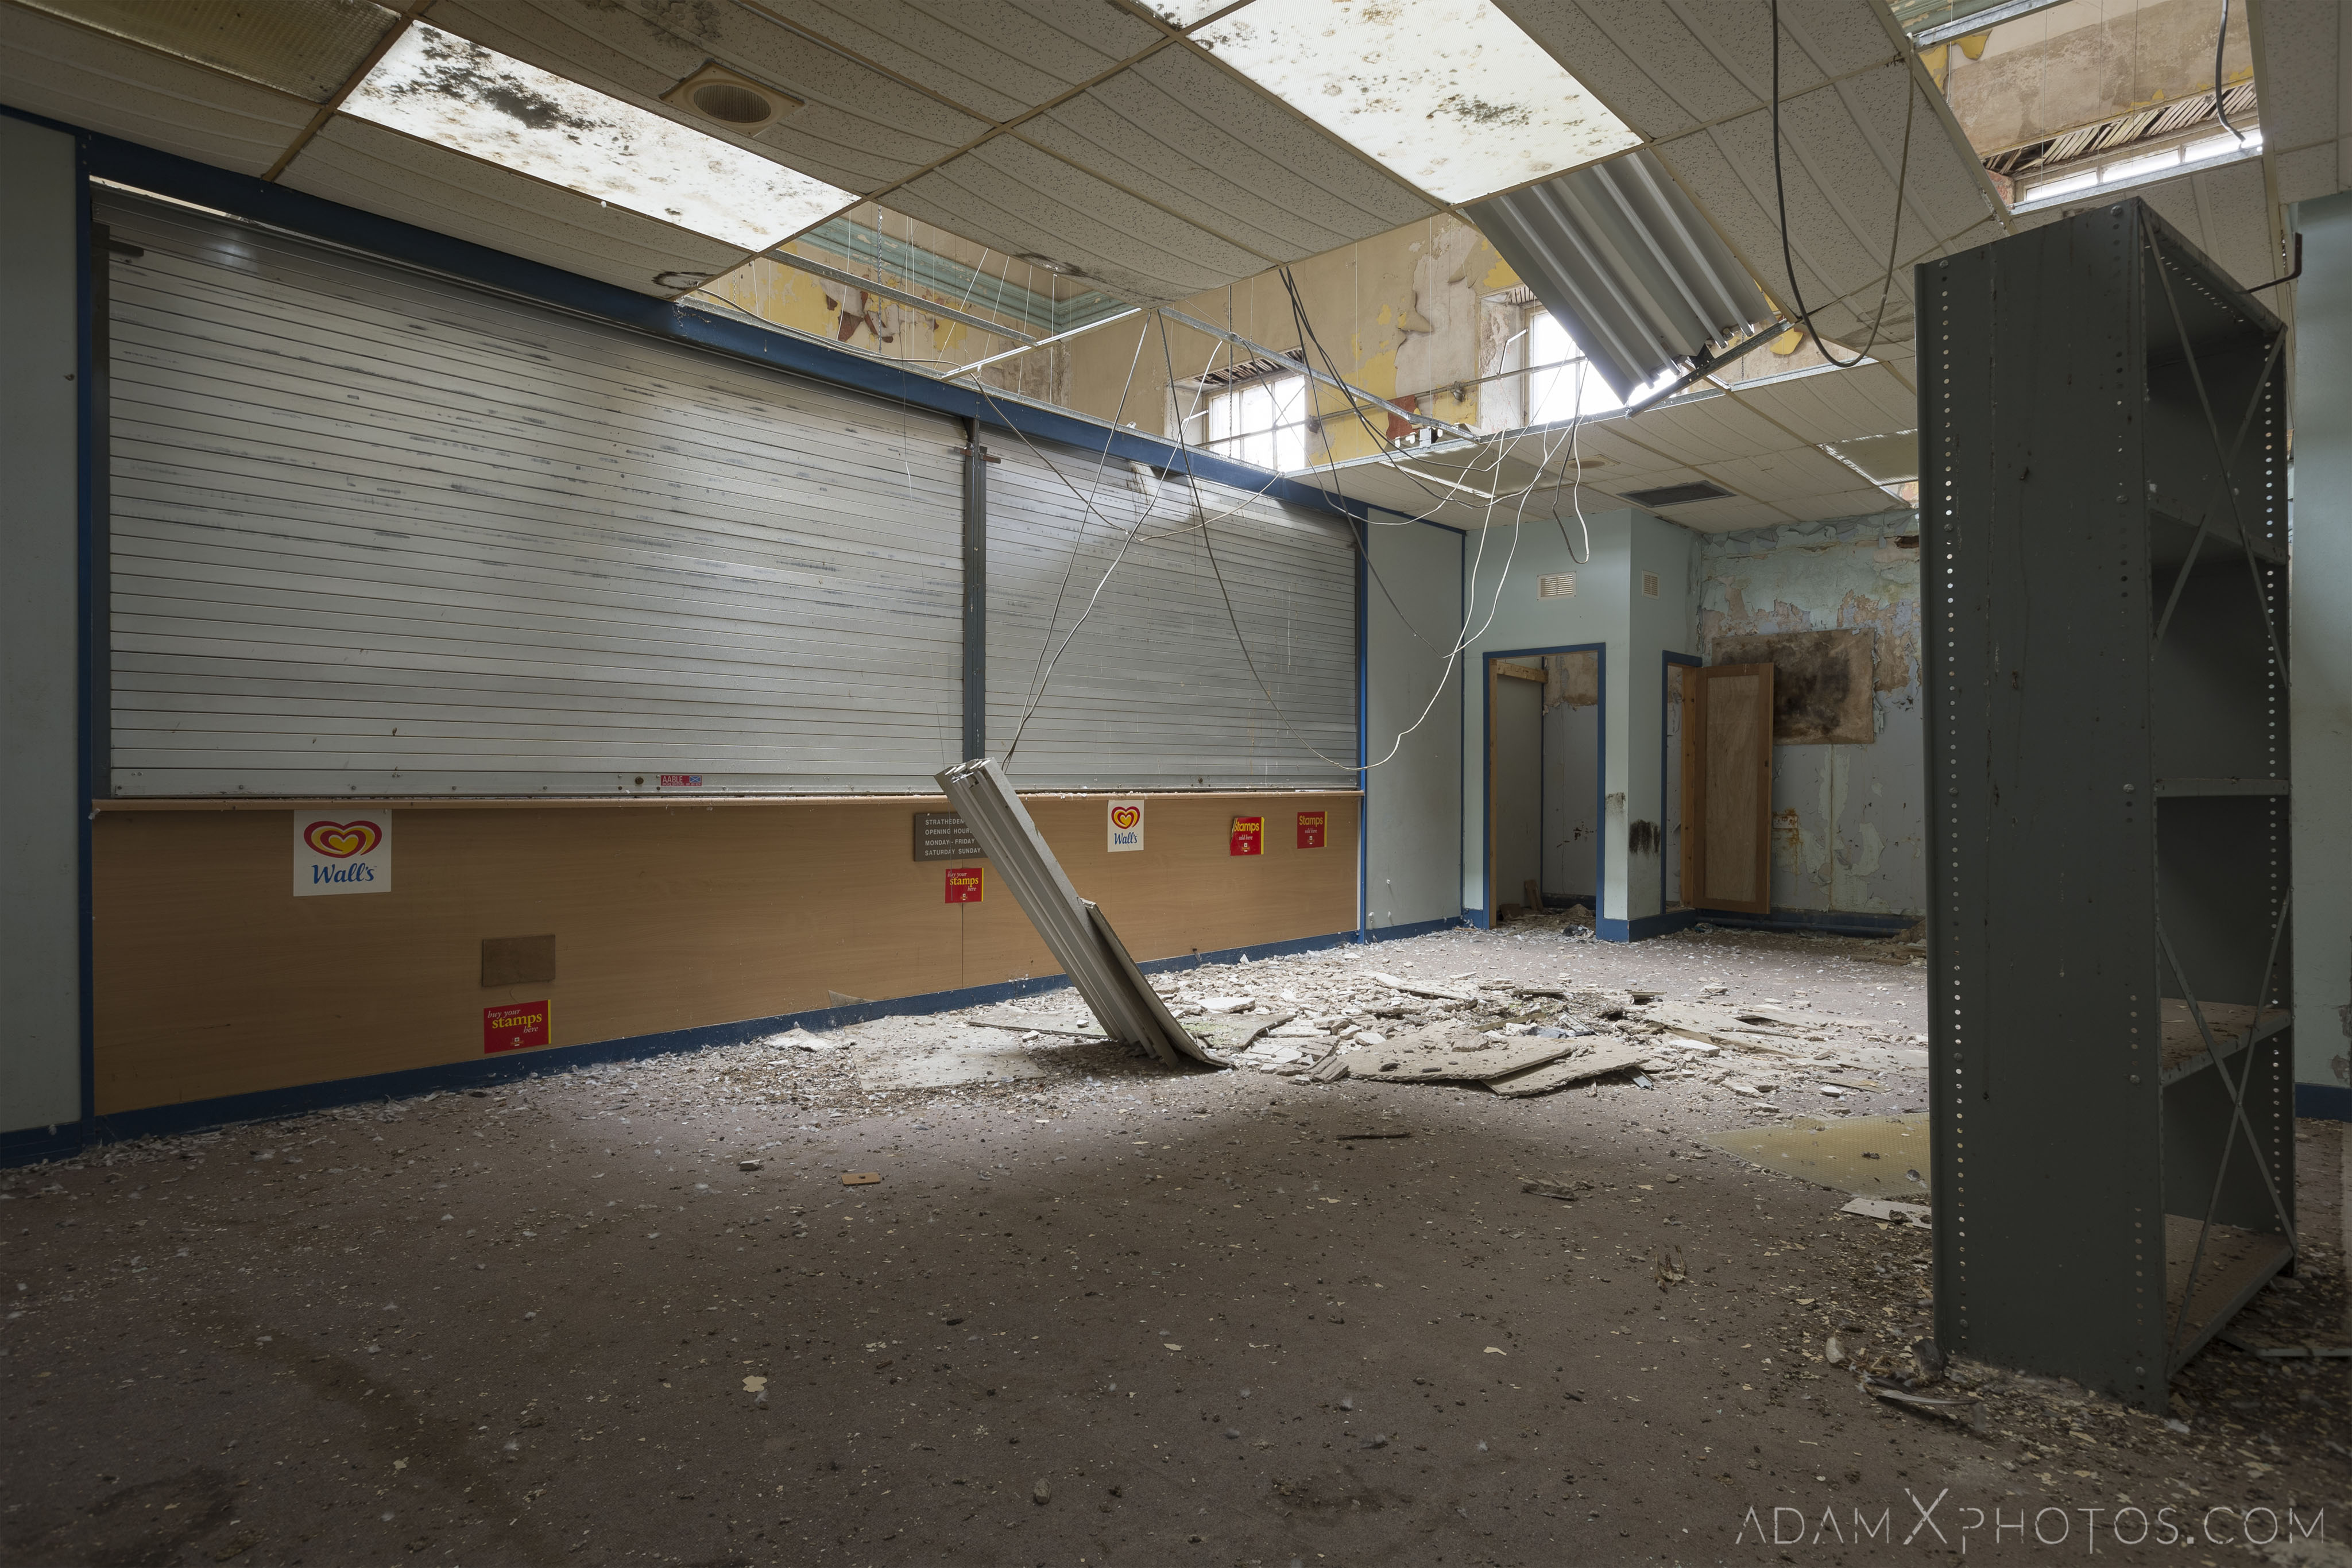 Shop Stratheden Hospital Fife Scotland Adam X Urbex Urban Exploration Access 2018 Abandoned decay ruins lost forgotten derelict location creepy haunting eerie